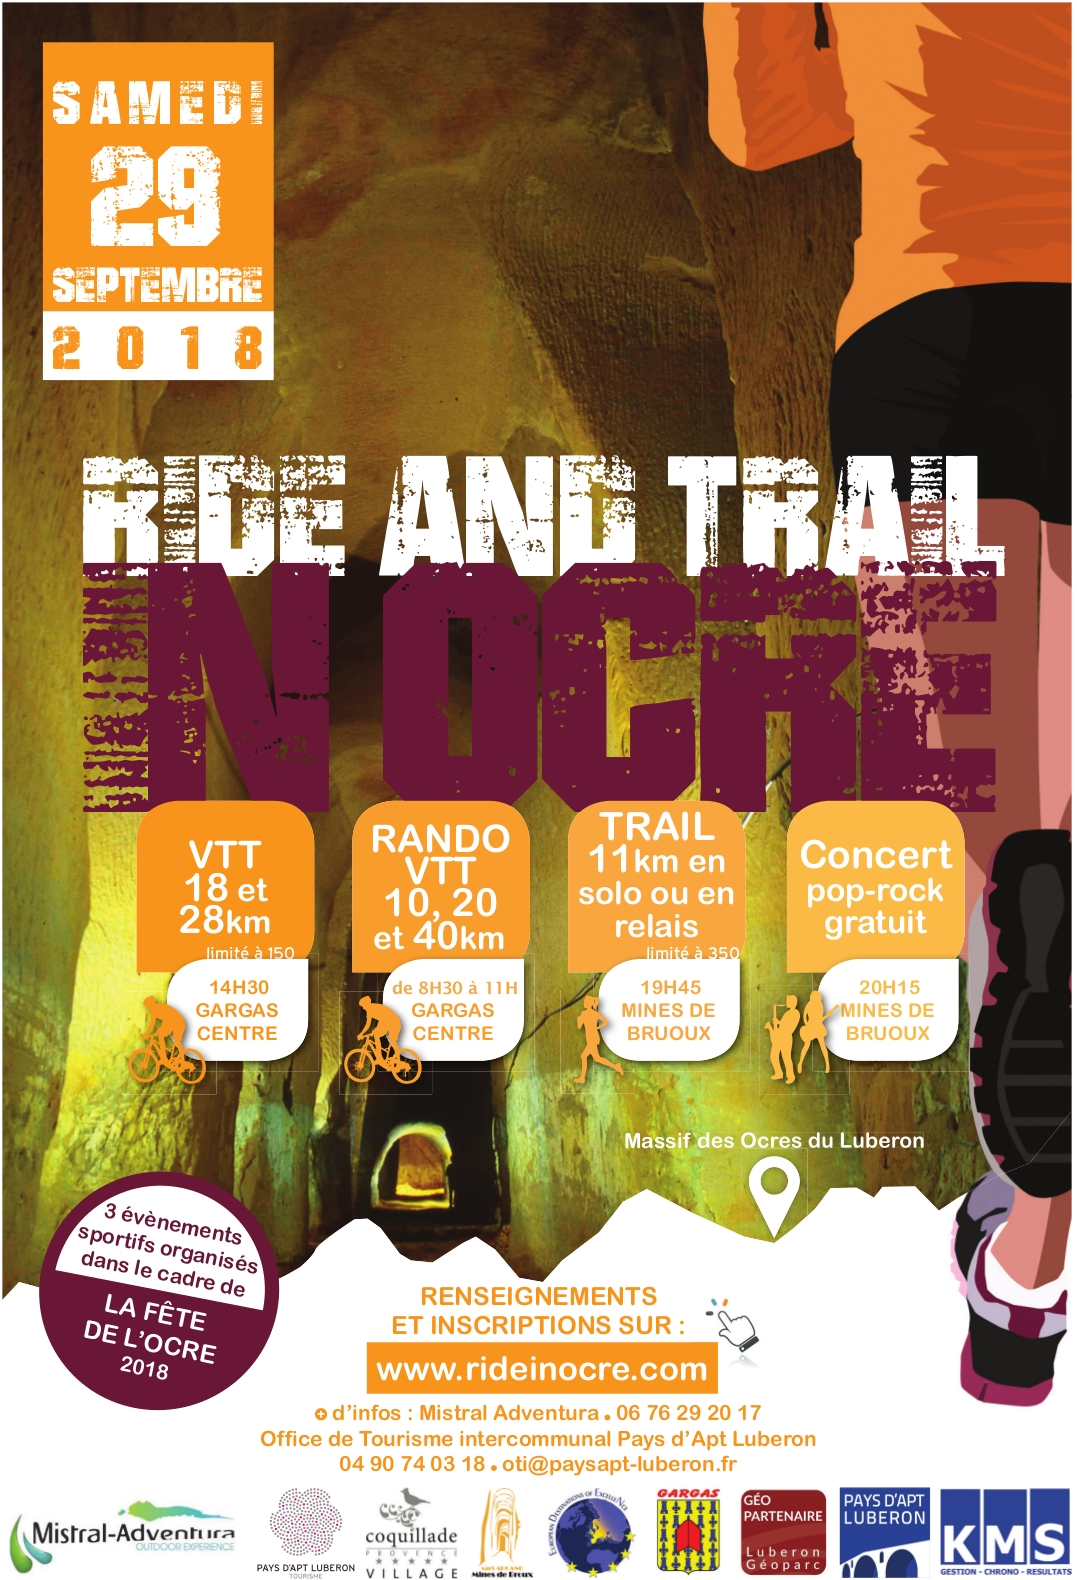 Ride & Trail In Ocre : Trail + Vtt